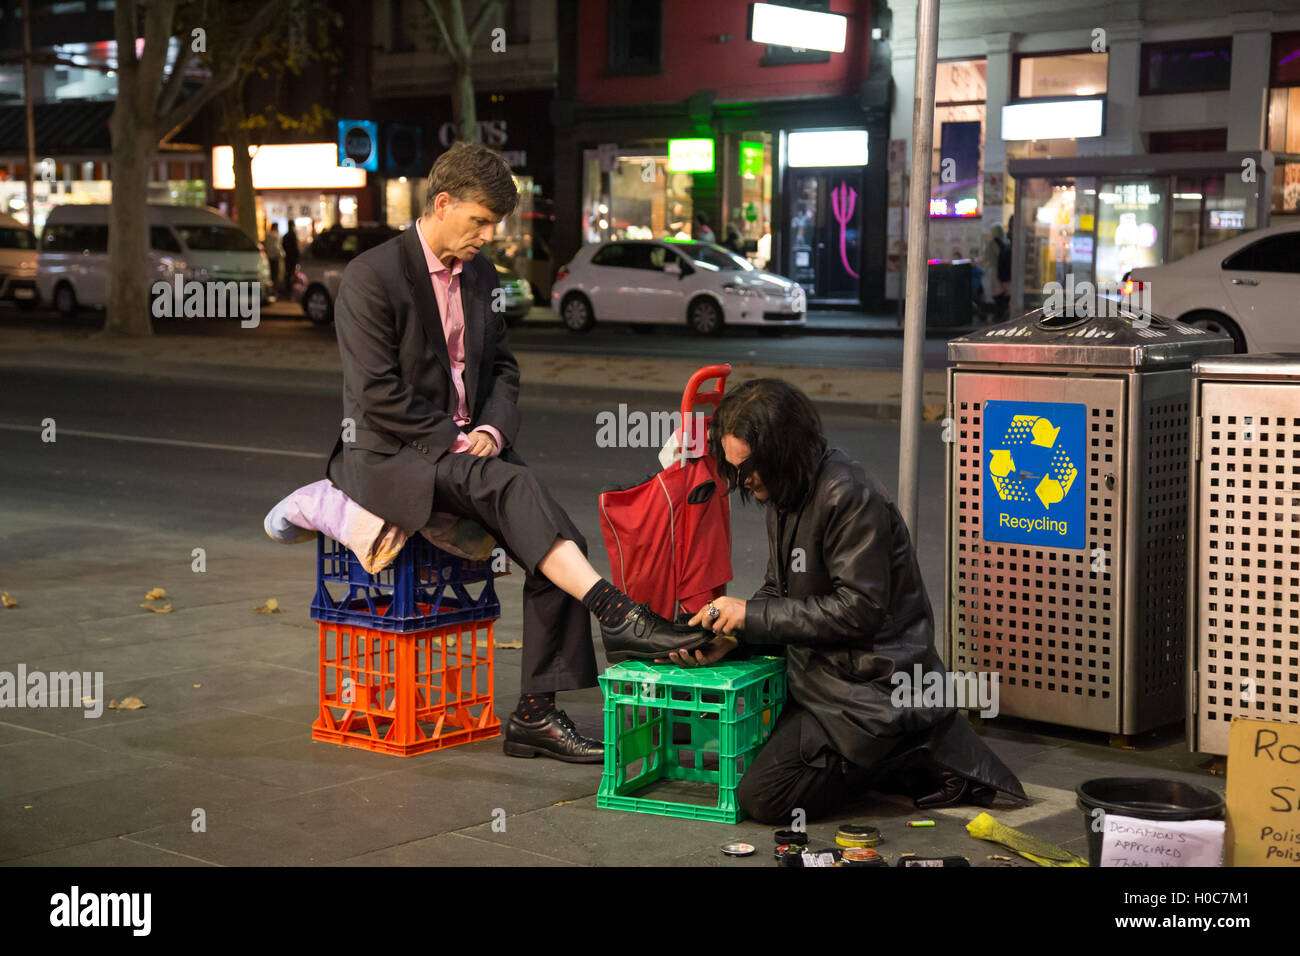 Shoe cleaning in the streets of Melbourne, Australia - Stock Image